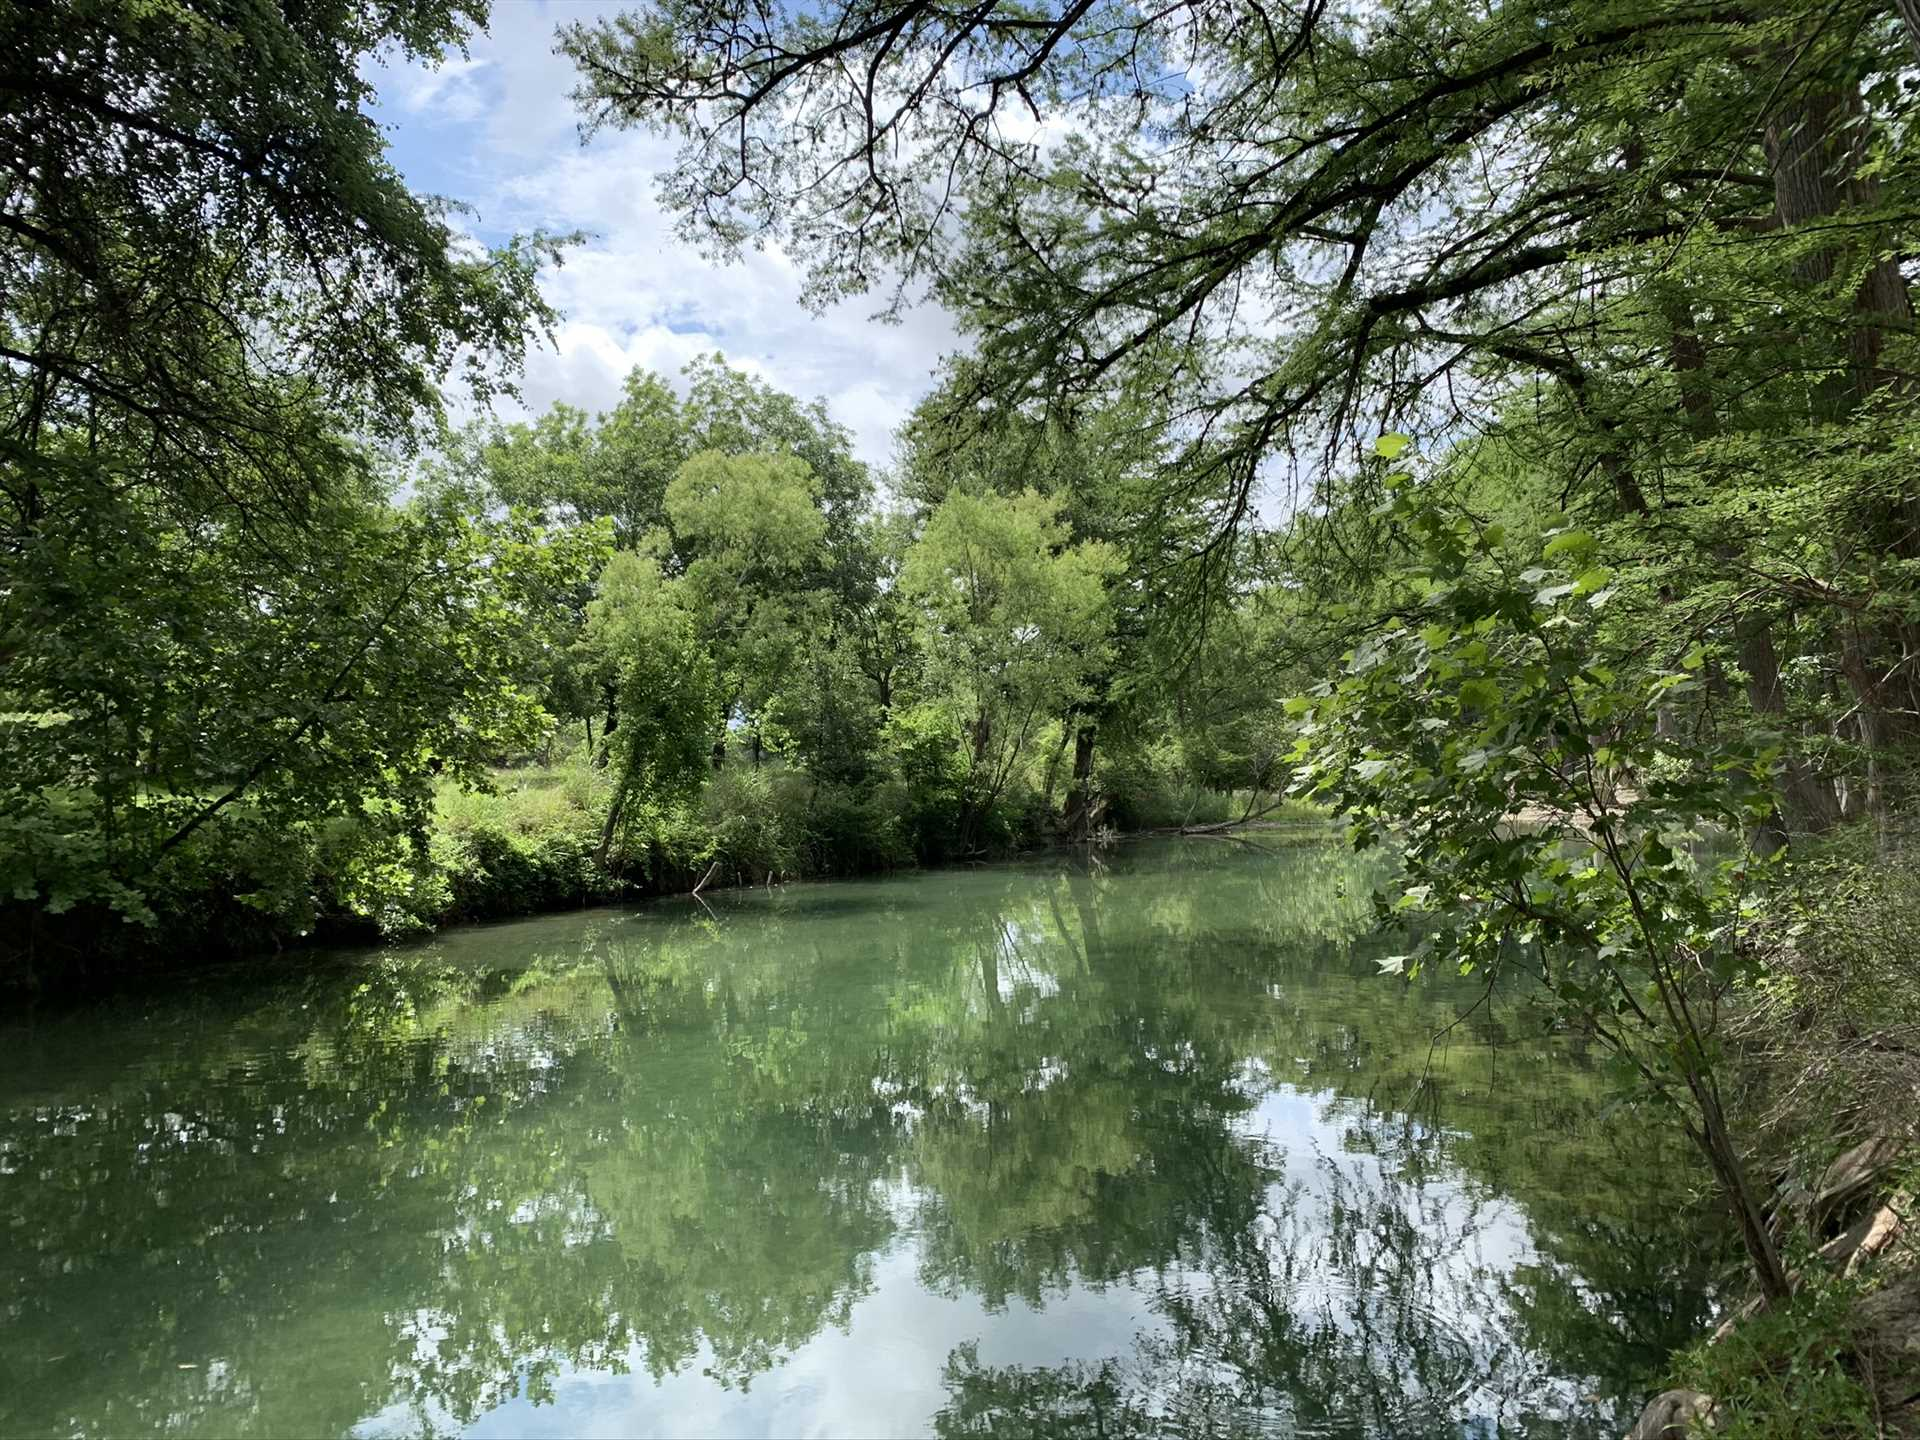 Can you see yourself tubing or swimming in this peaceful stretch of the river? We'd love to help put you there!